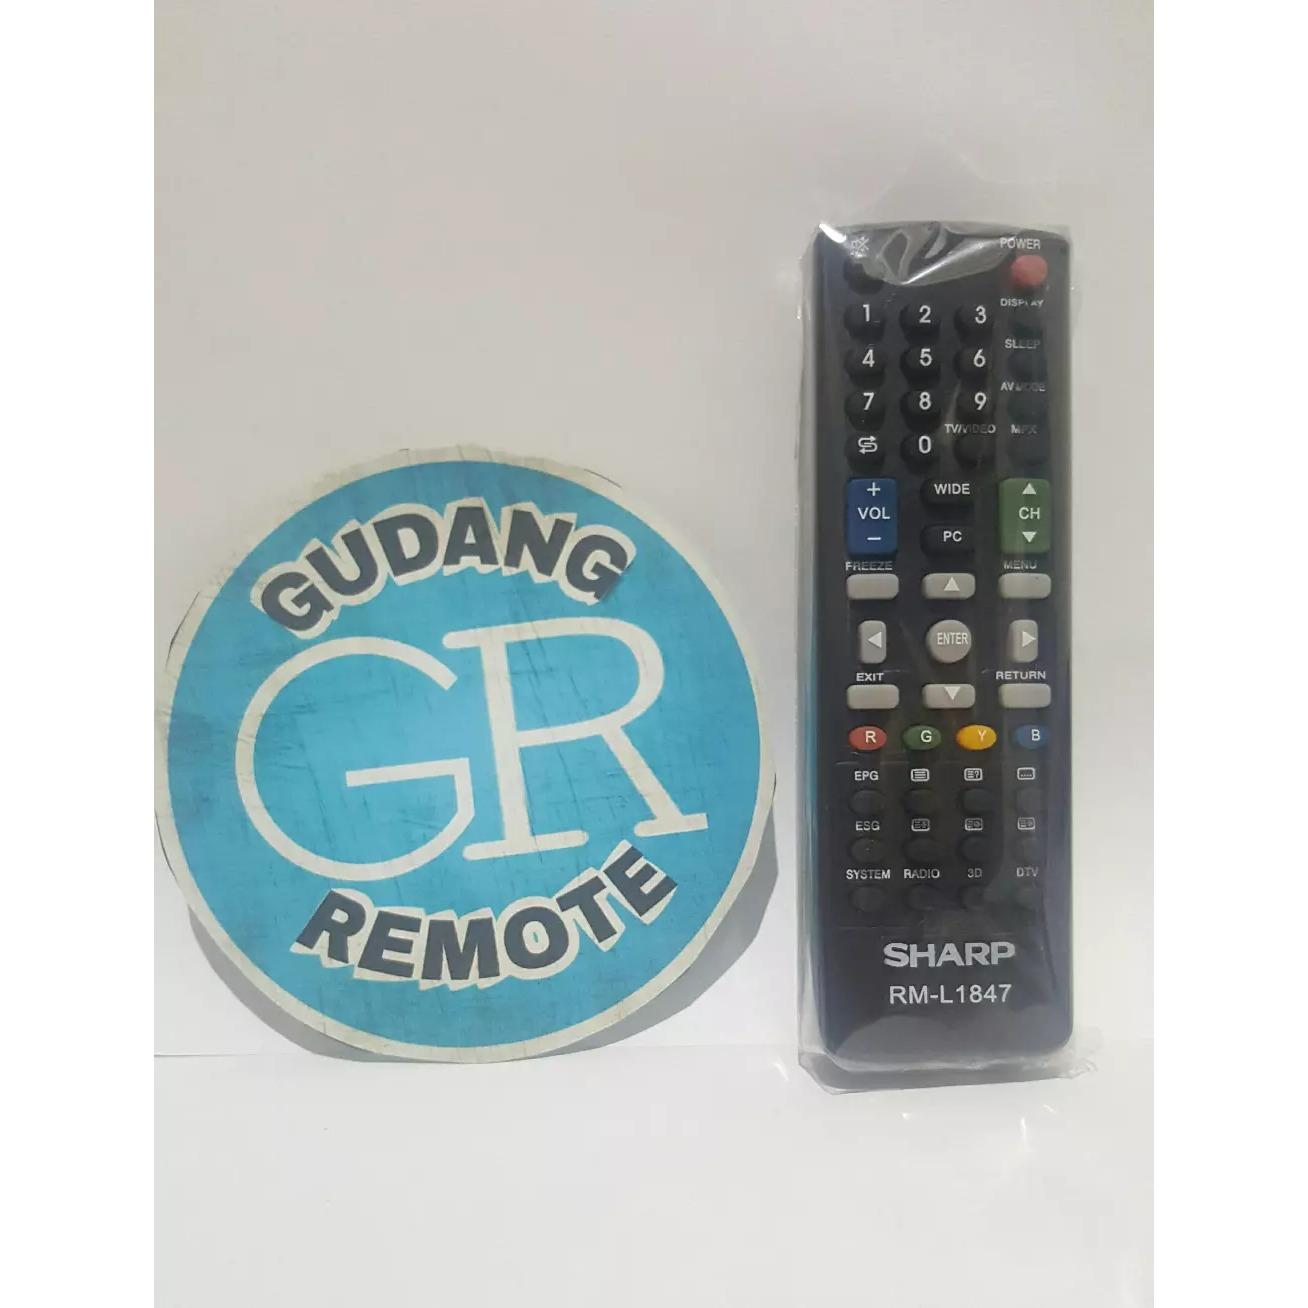 TERLARIS Remote TV Sharp LED/LCD Pendek TOKO RISBAS